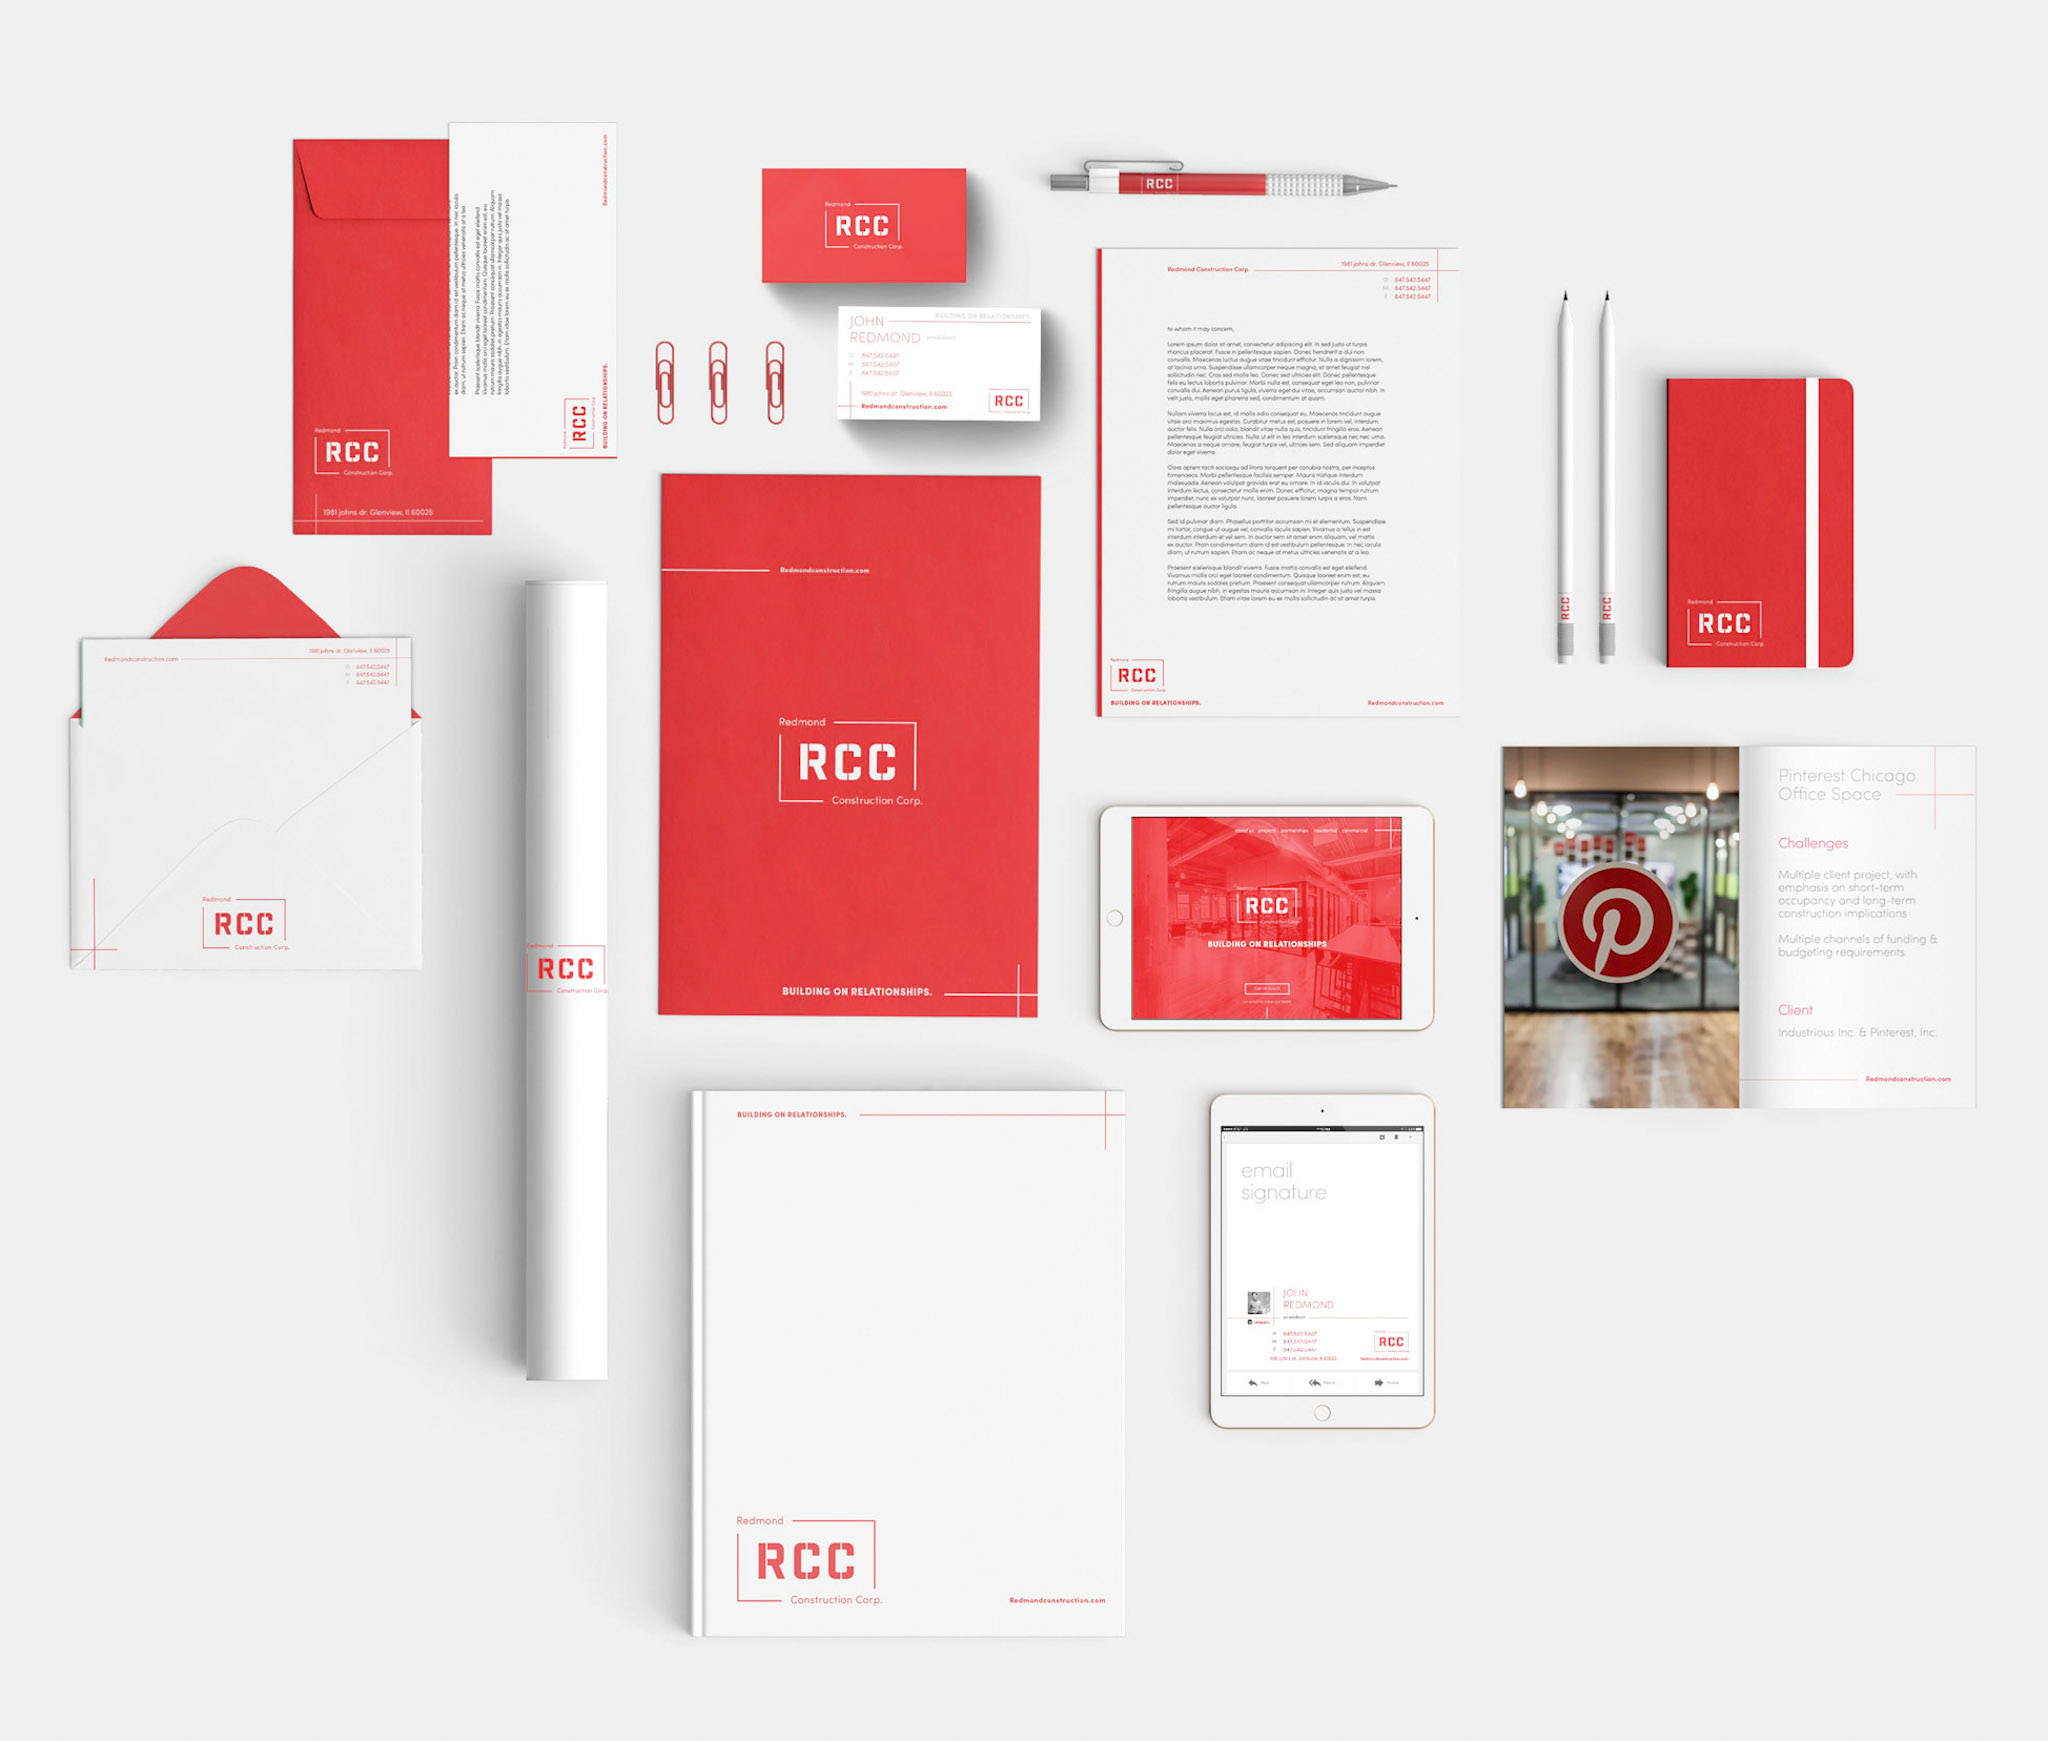 This image shows the branded (predominantly red and white) stationery at a glance. Including: envelopes, letterhead, business cards, blueprint roll, brochure, email signature, and folder.